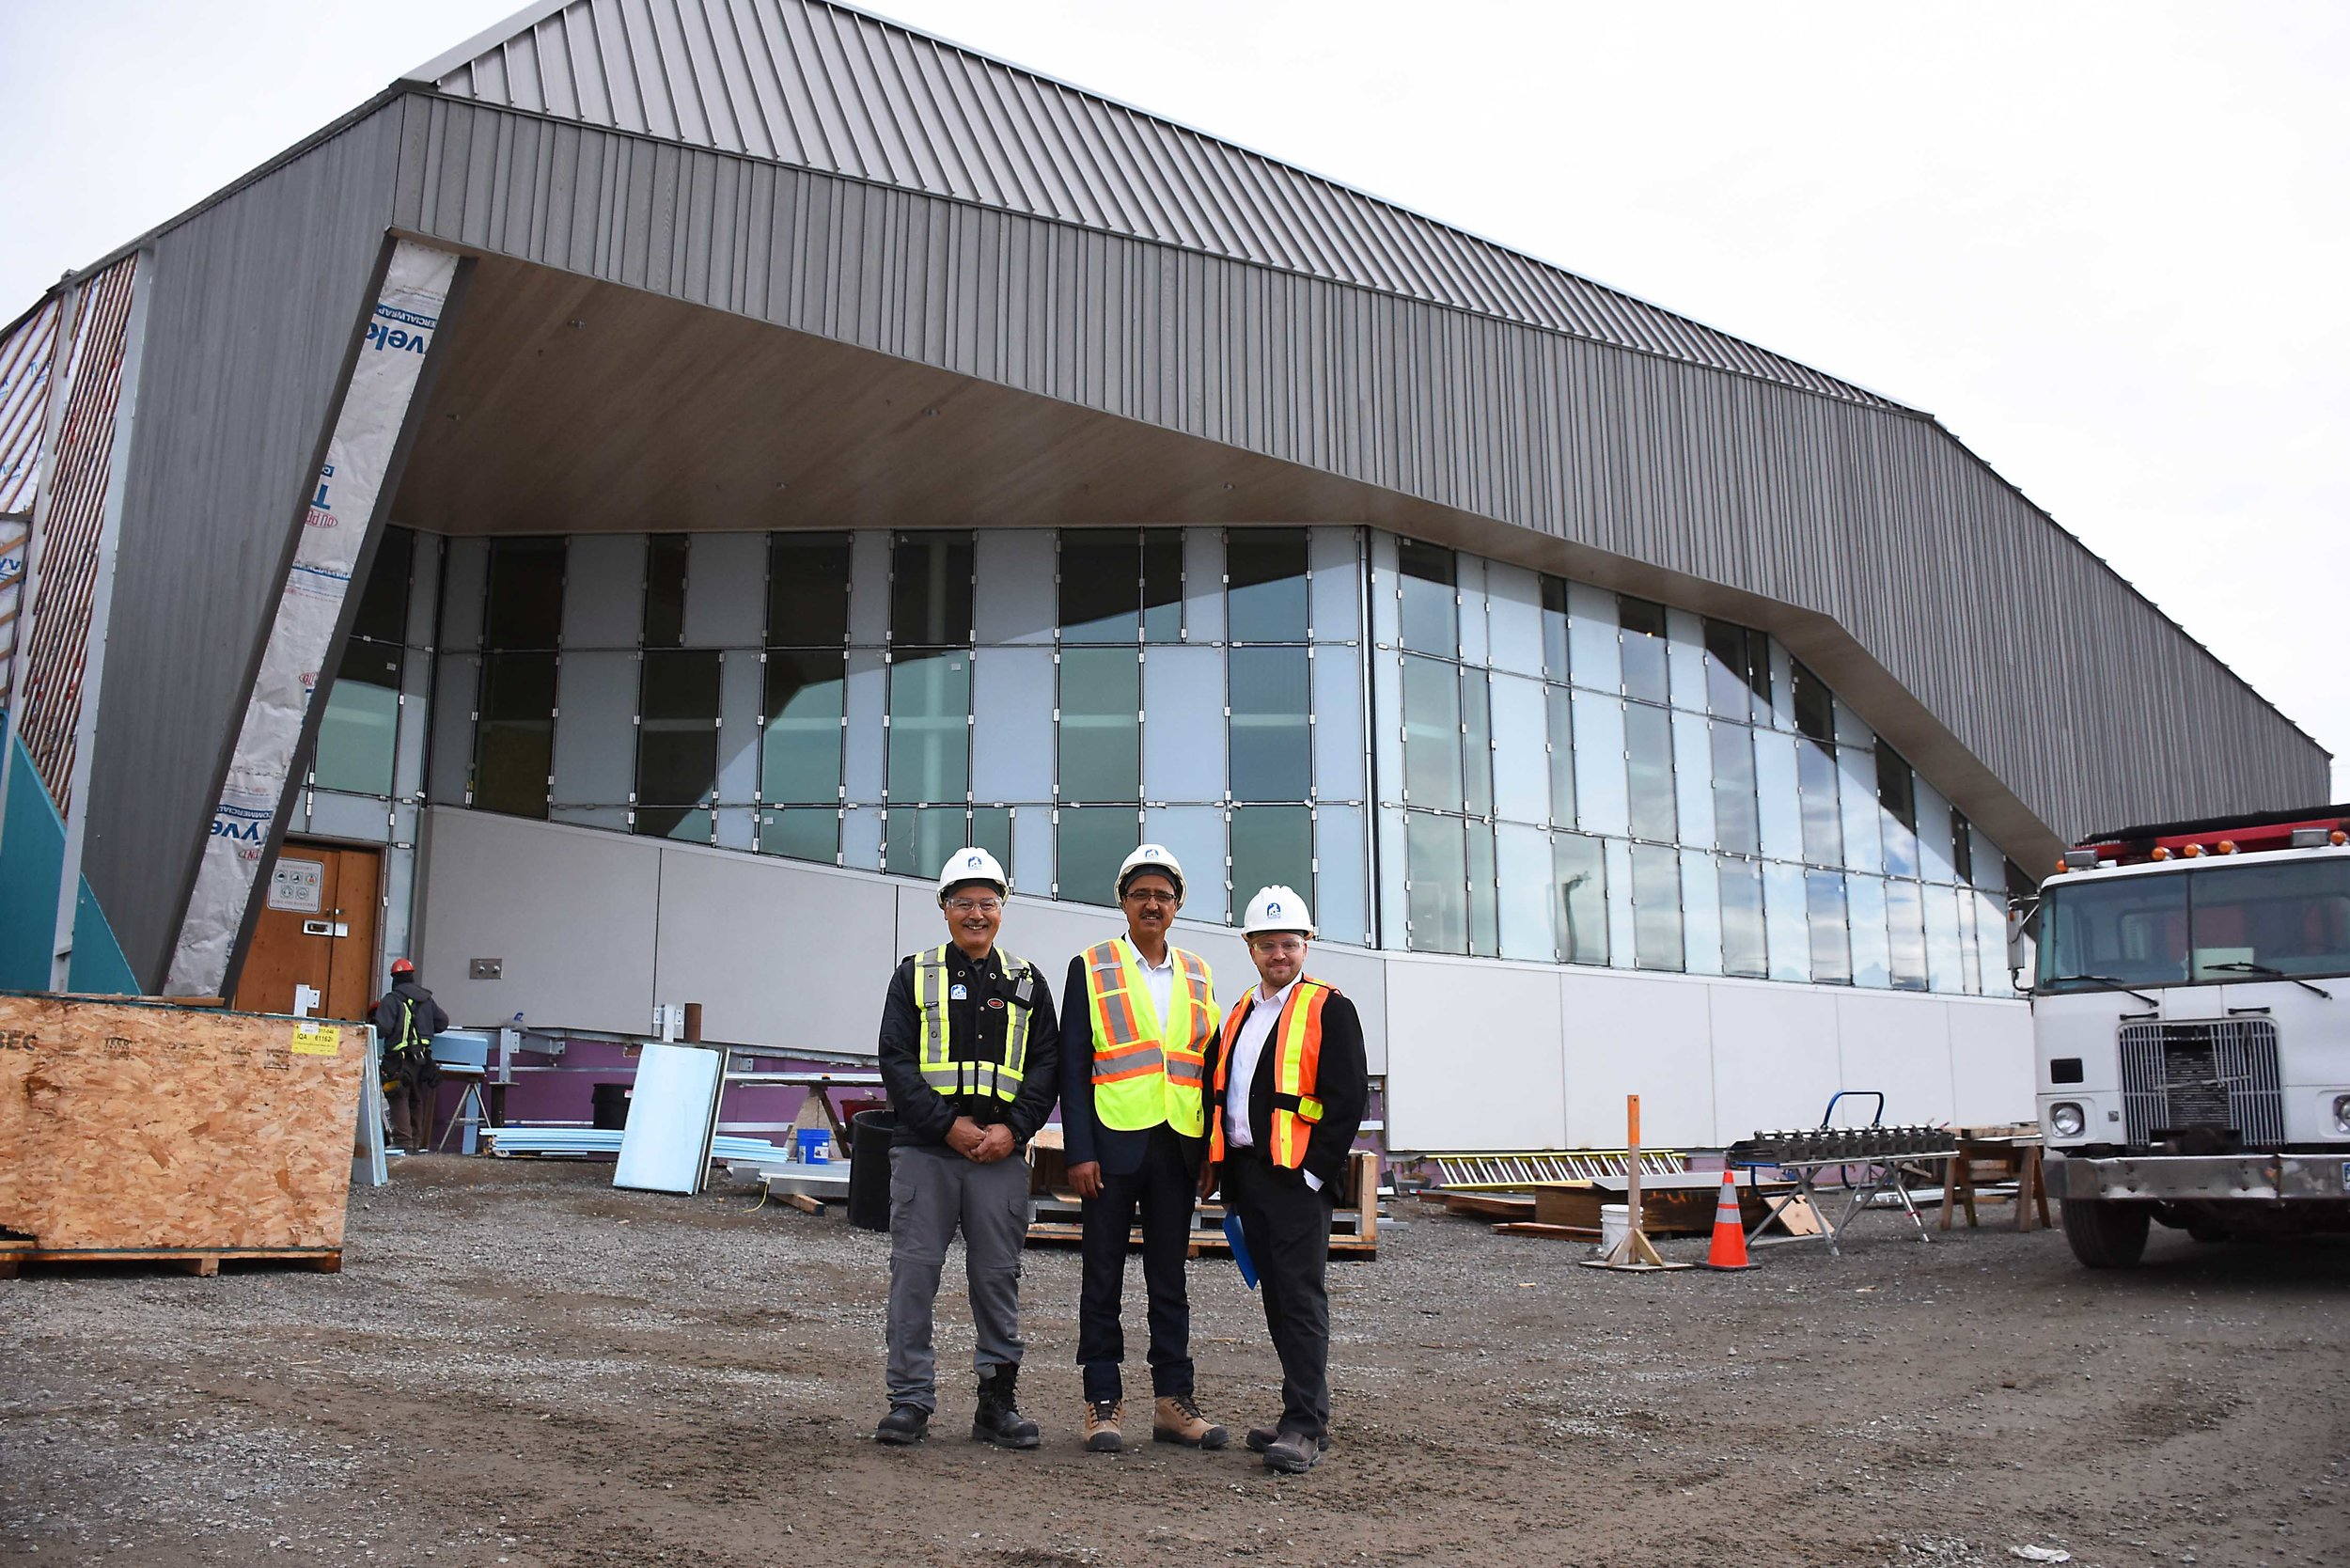 After the announcement, Premier Savikataaq,   Minister Sohi, and Vice-President of NAC, Karsten Henriksen, visited the new Nunatta Campus Building extension.